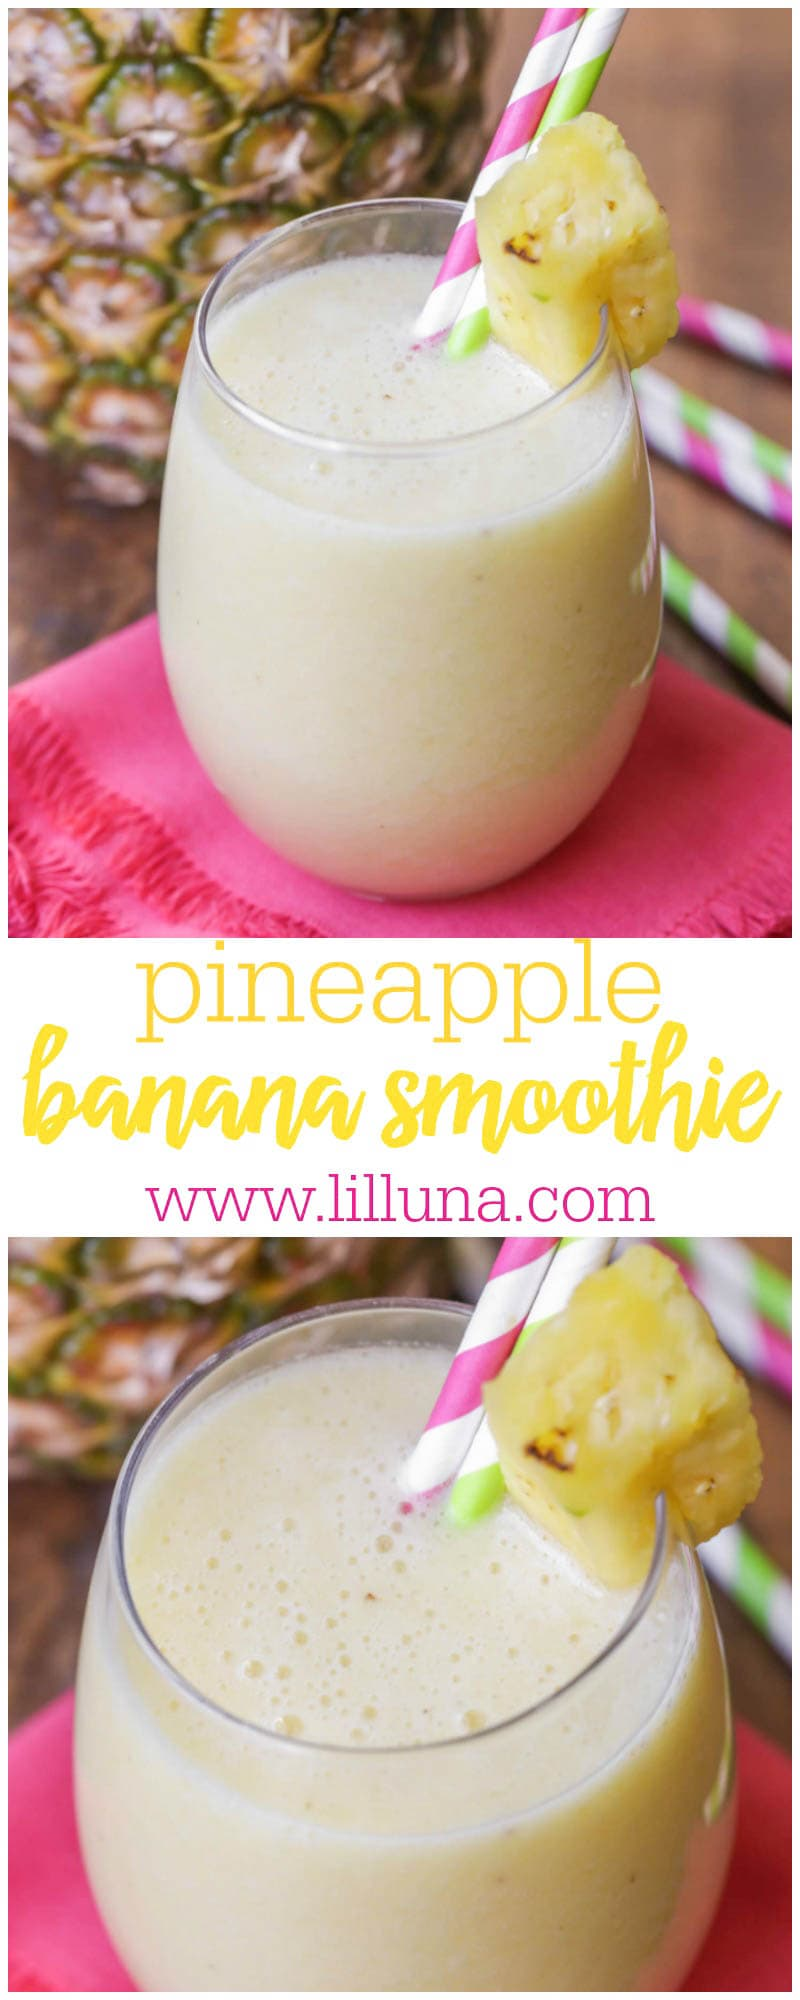 Pineapple Banana Smoothie recipe - a simple, quick and tasty smoothie with bananas, pineapple, juice and ice. It's a family favorite and tastes amazing!